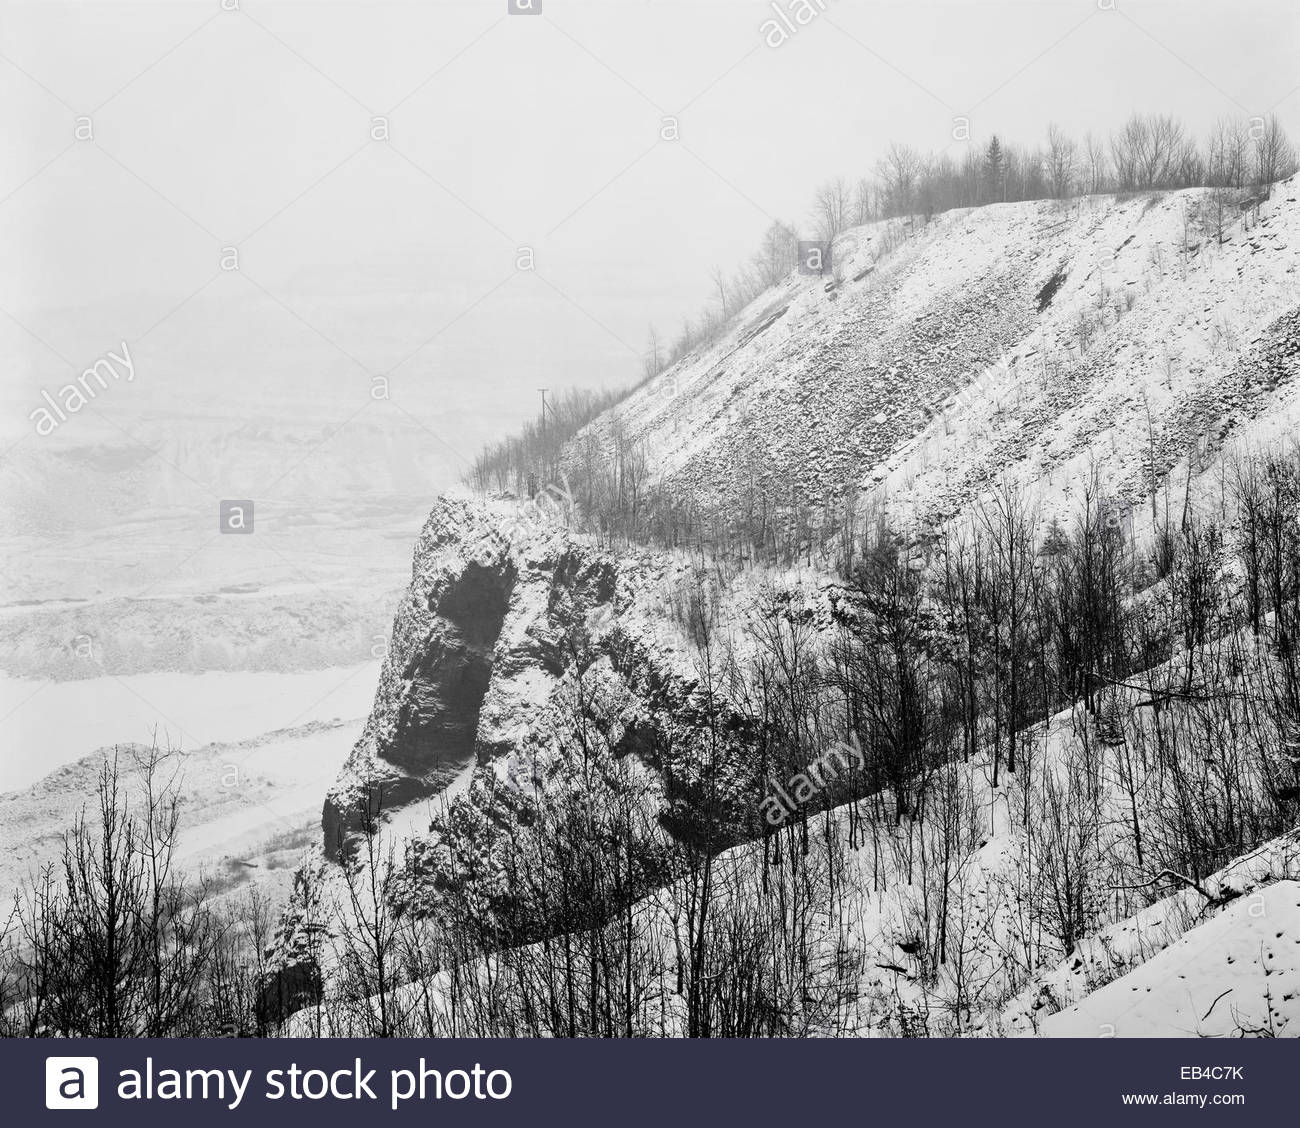 The Hull Rust Mahoning Open Pit Iron Mine. - Stock Image